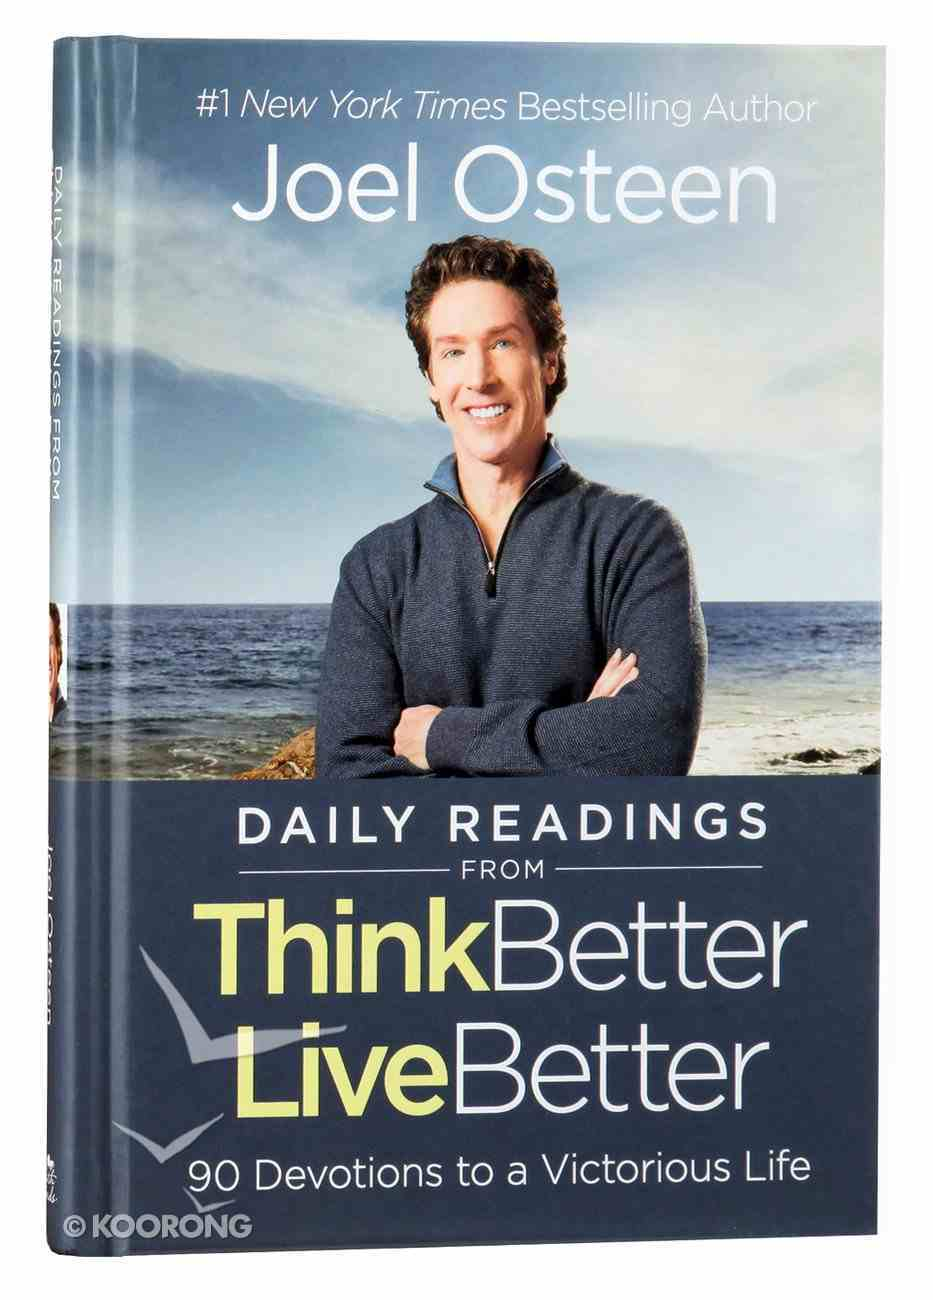 Daily Readings From Think Better, Live Better: 90 Devotions to a Victorious Life Hardback